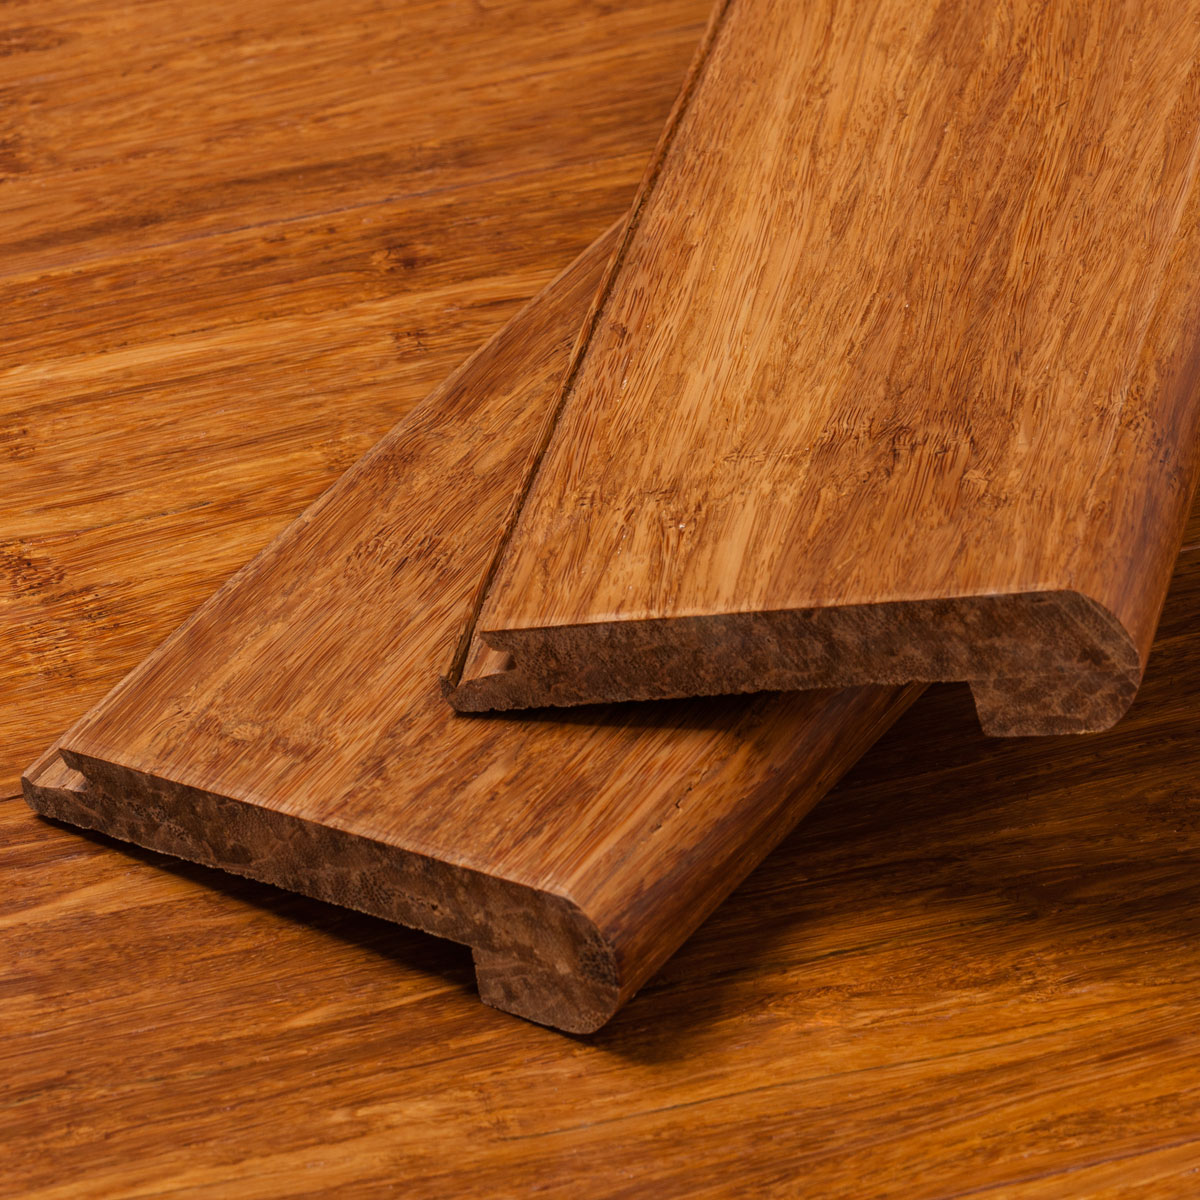 Bamboo Flooring Noise: Products